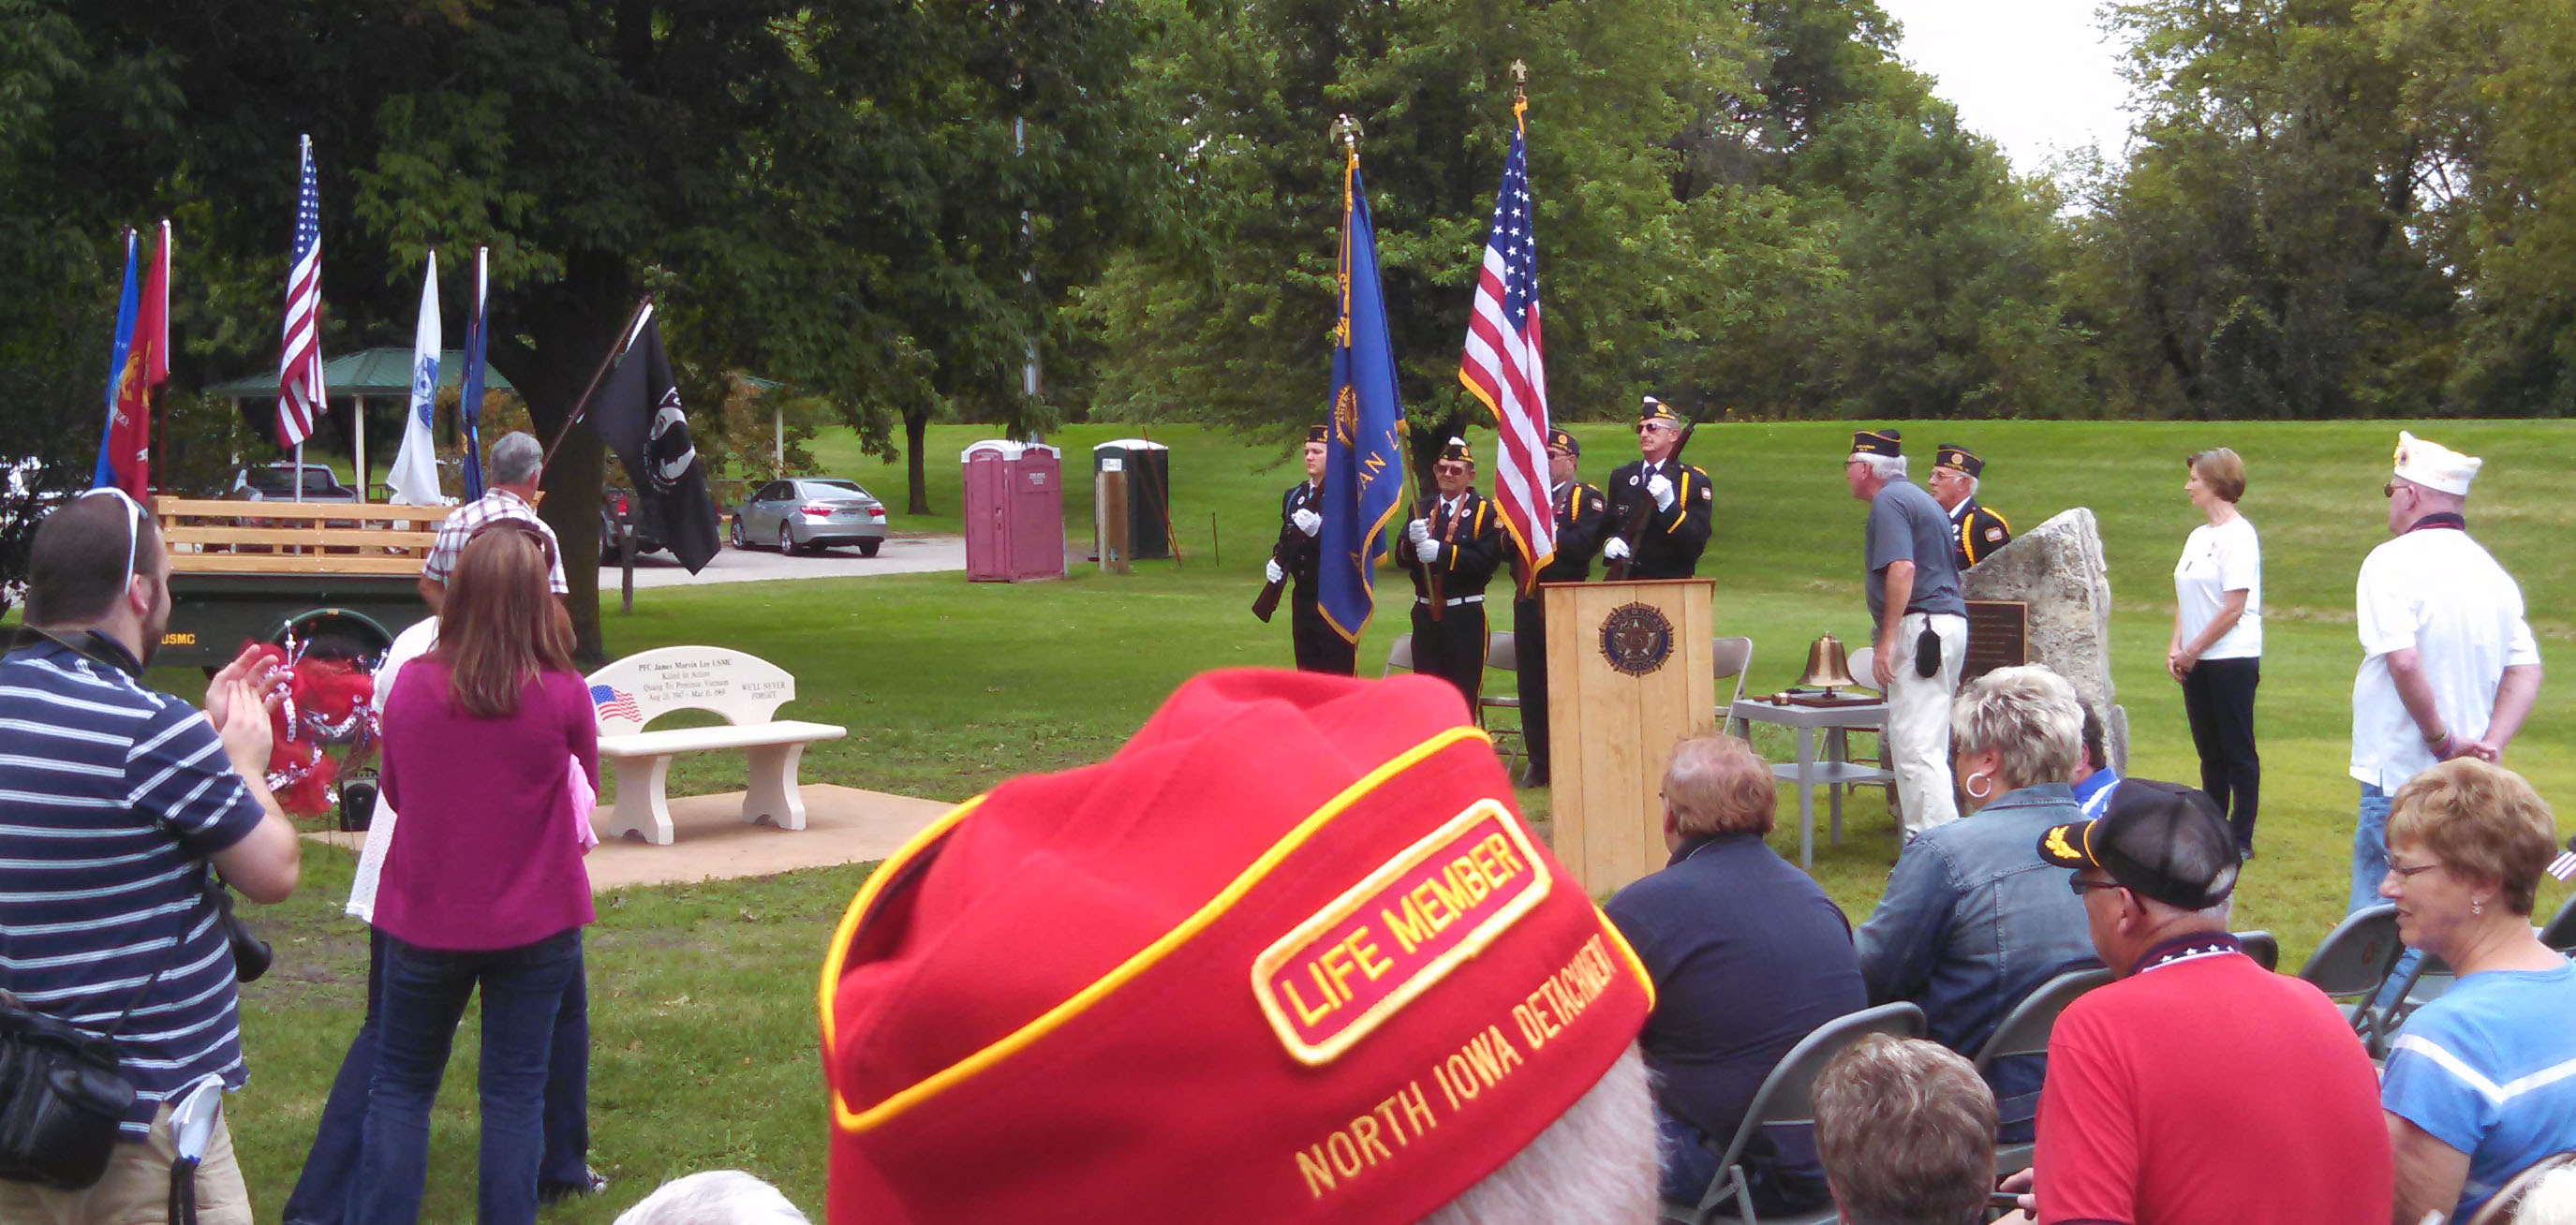 8 29 15 Lee Memorial Dedication 6